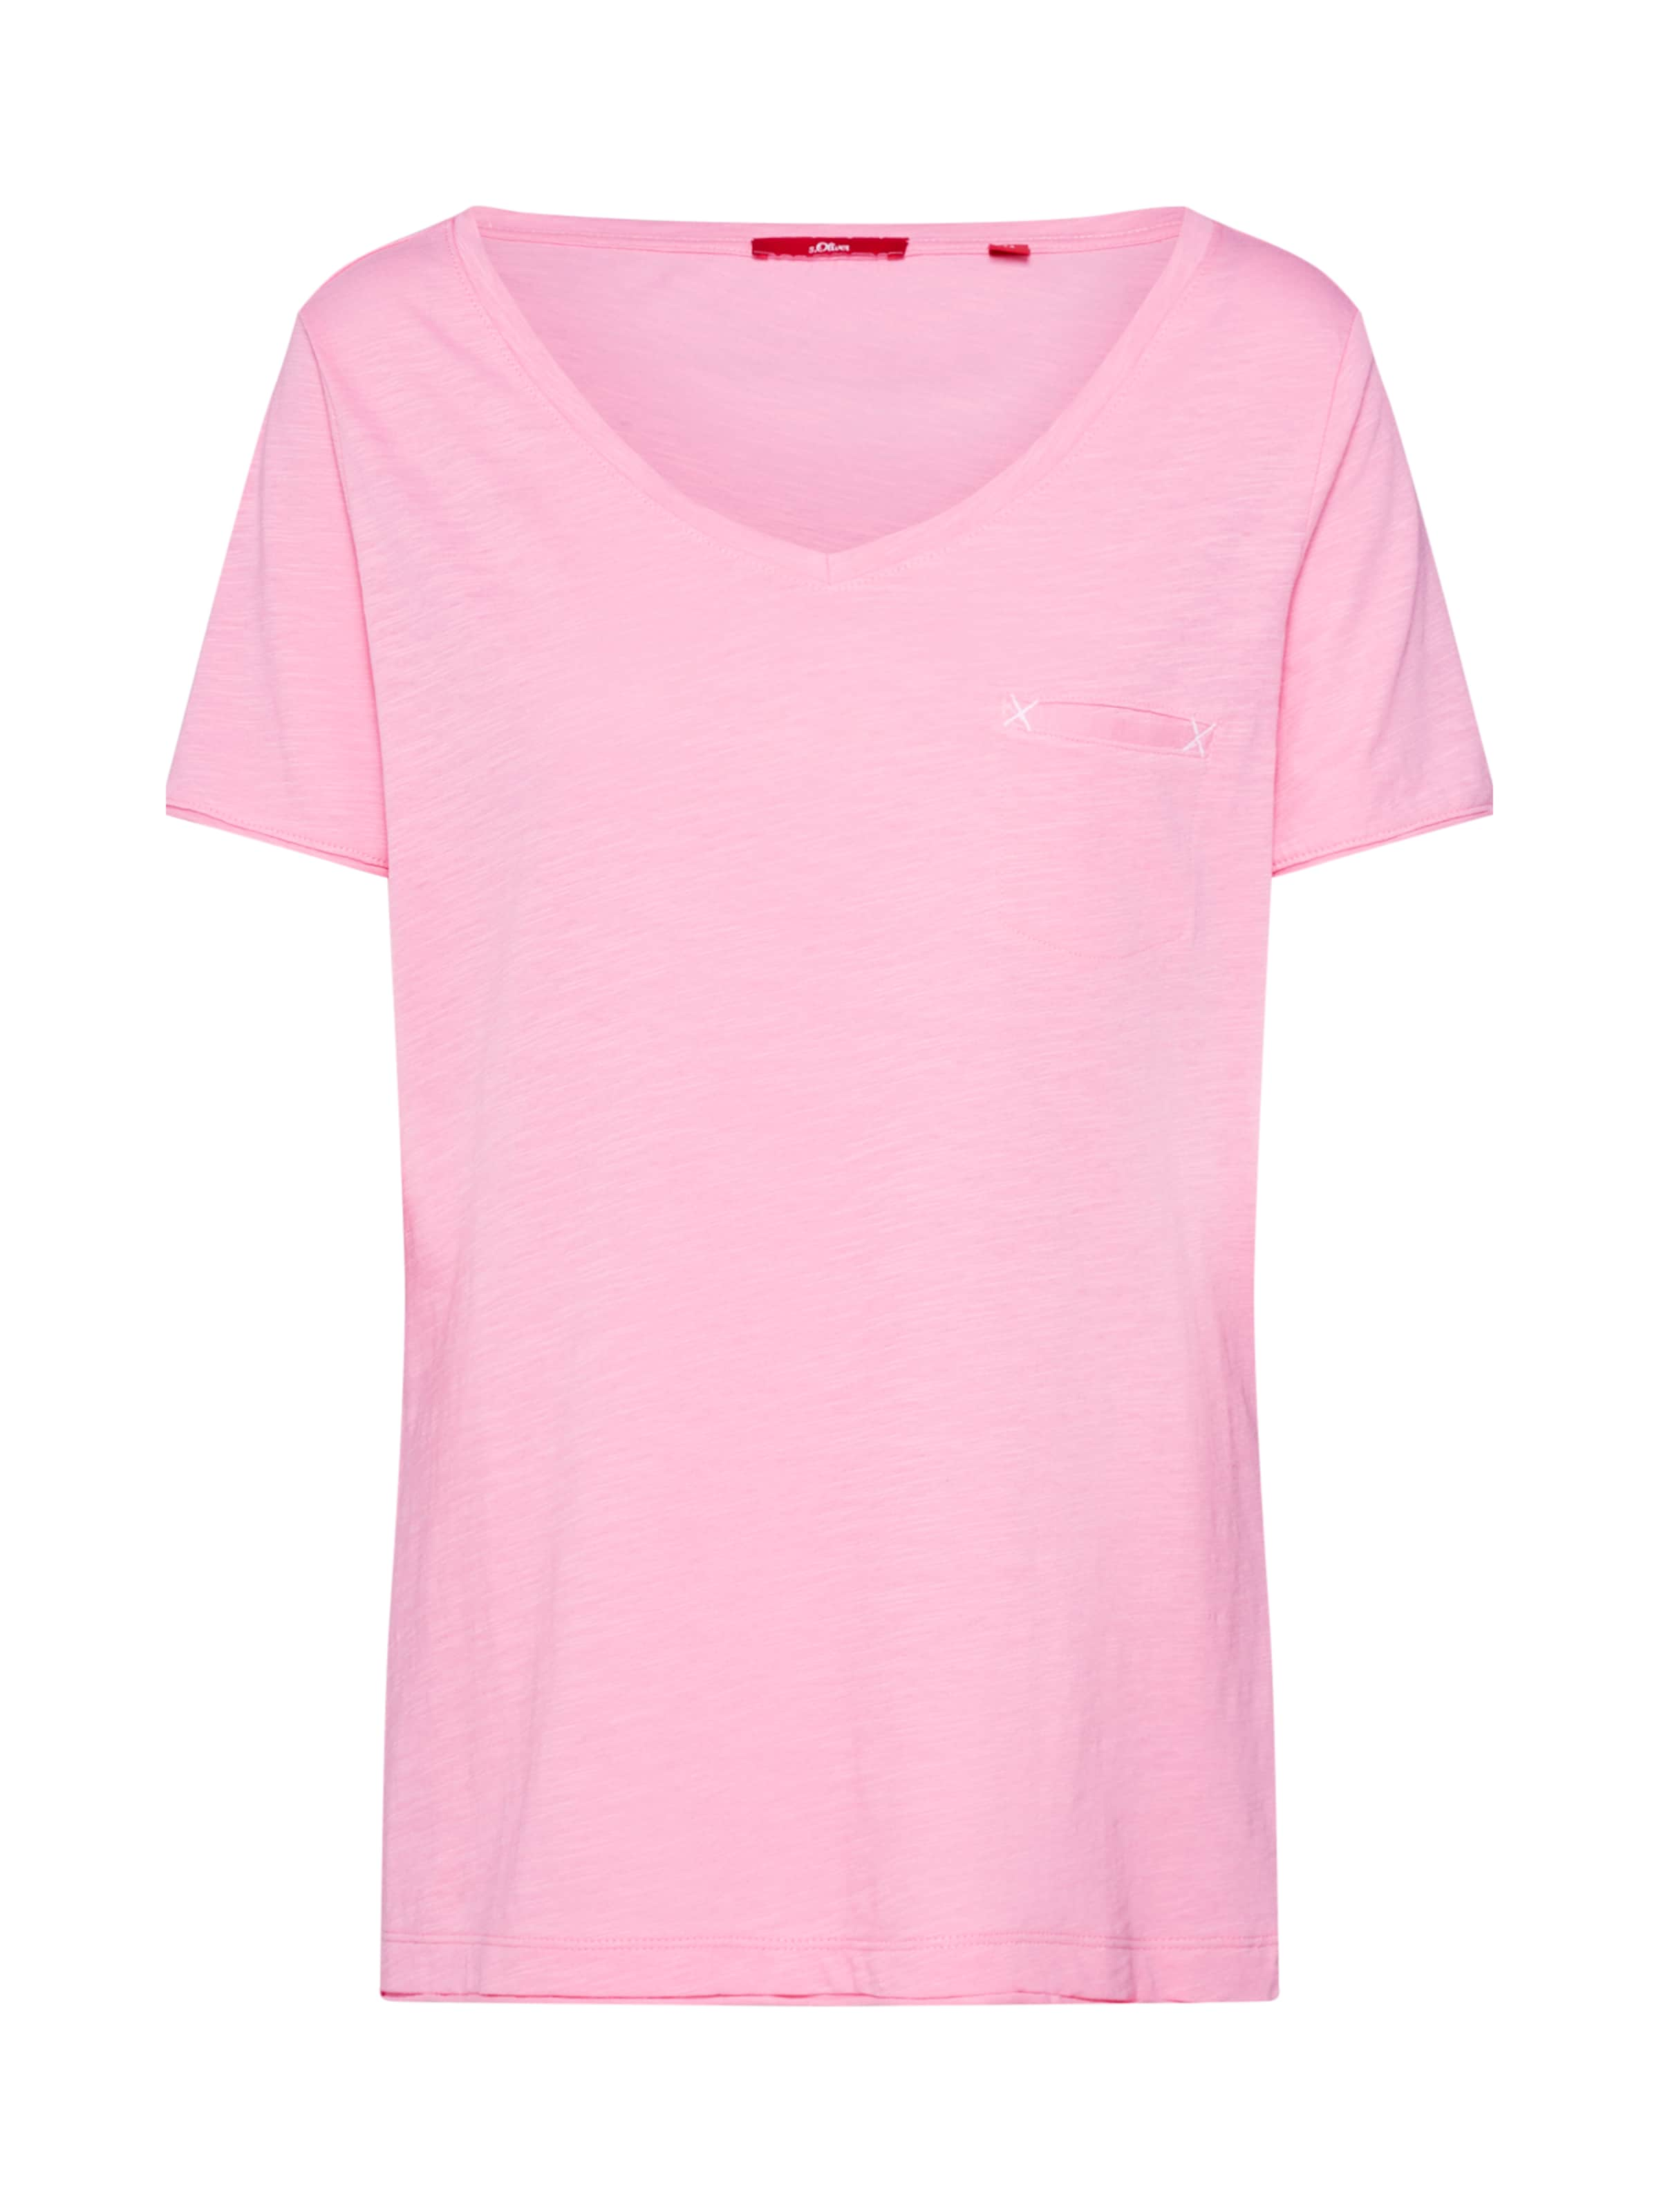 S oliver Label Pink In Shirt Red wZ8ONnX0Pk